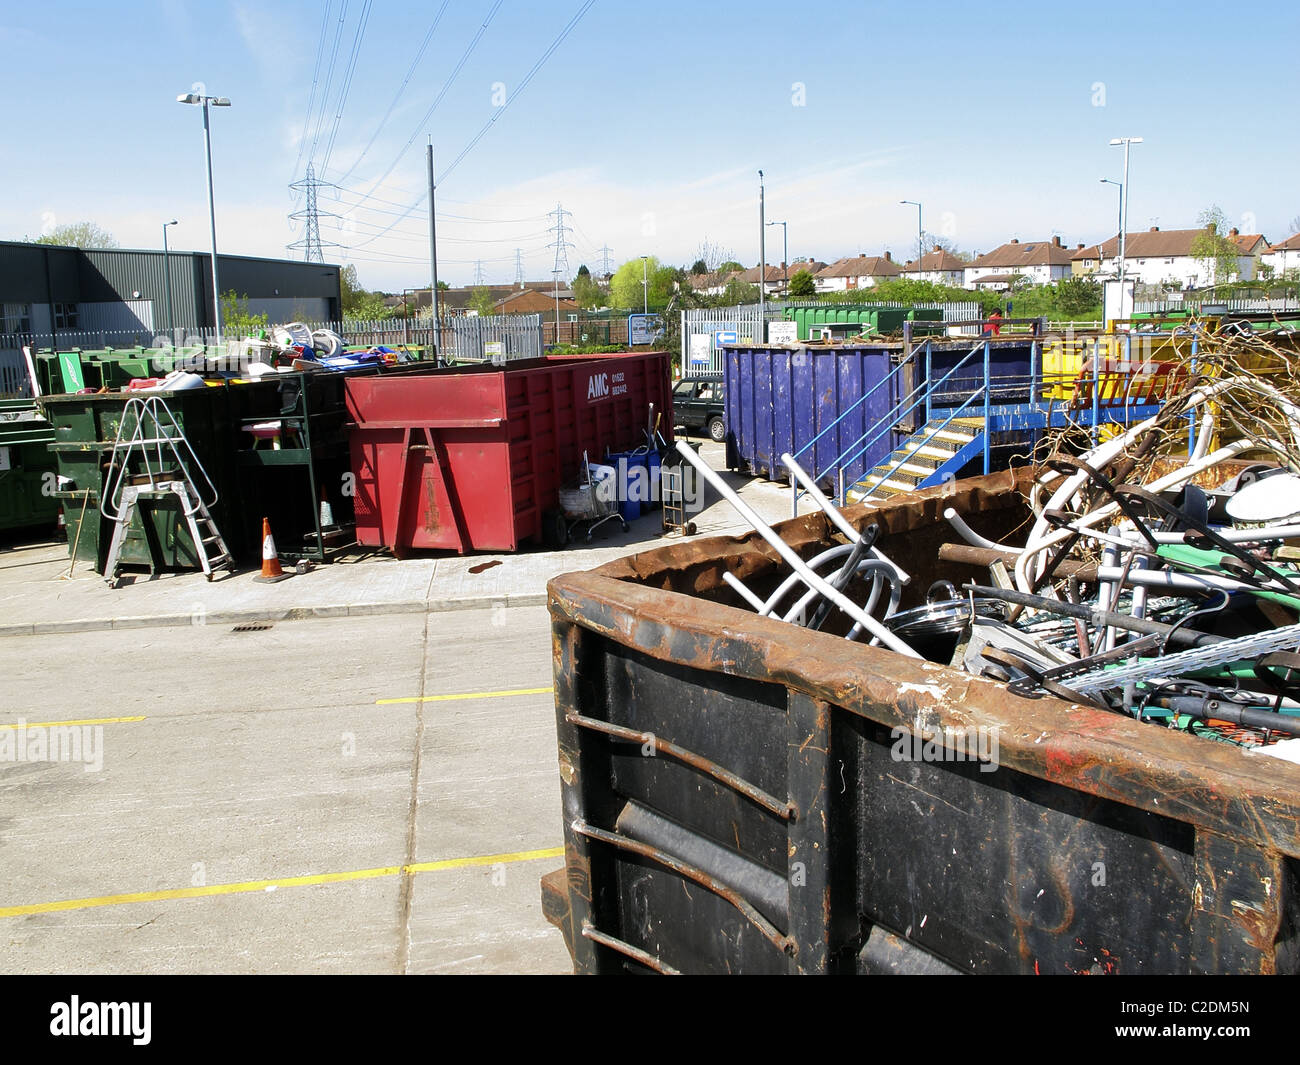 Sutton council waste recycling centre. - Stock Image